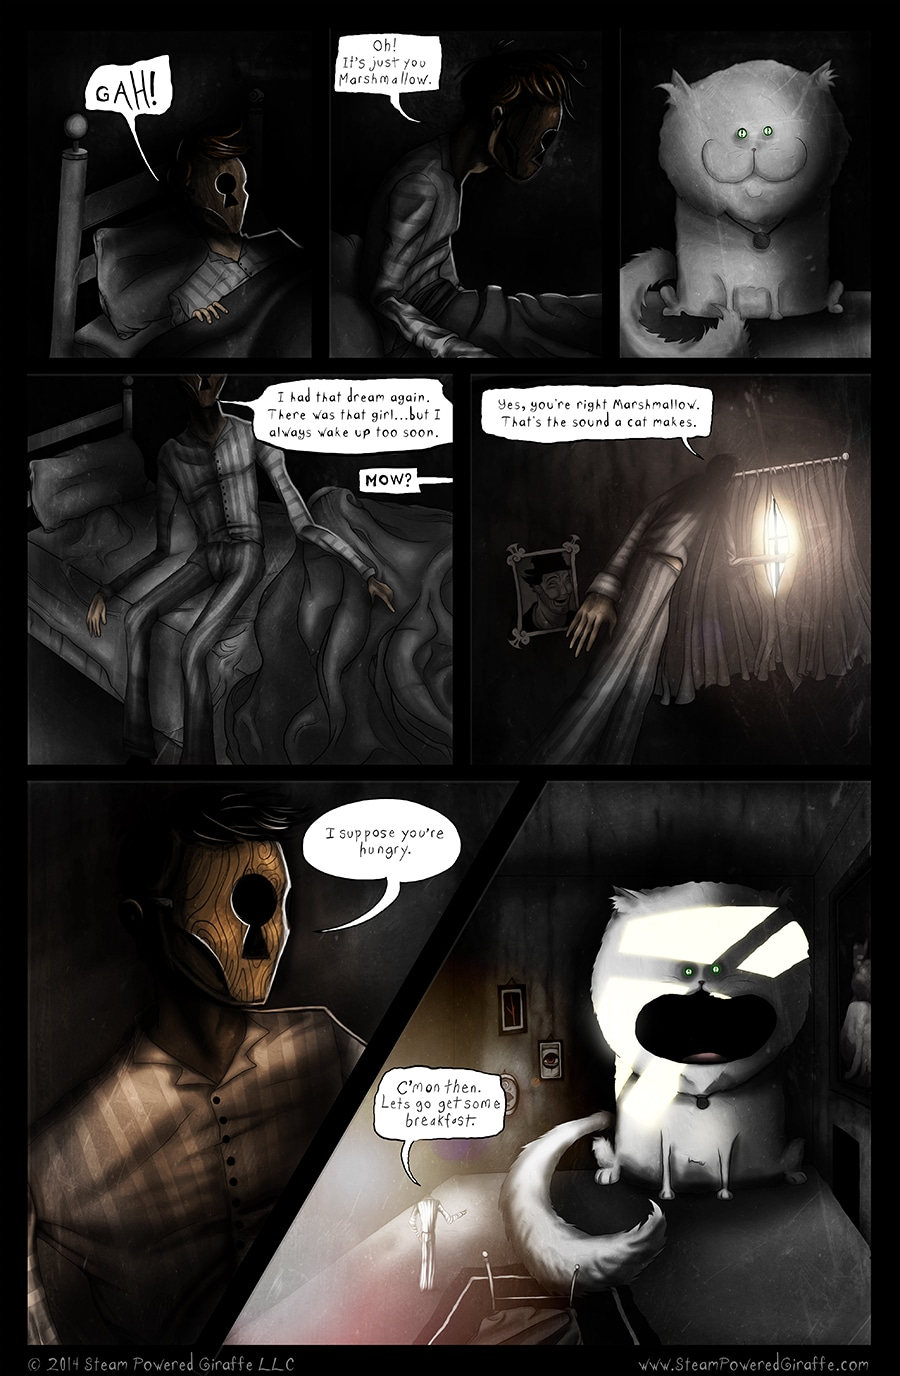 image of Steam Powered Giraffe Comic | TheGeekPages.com